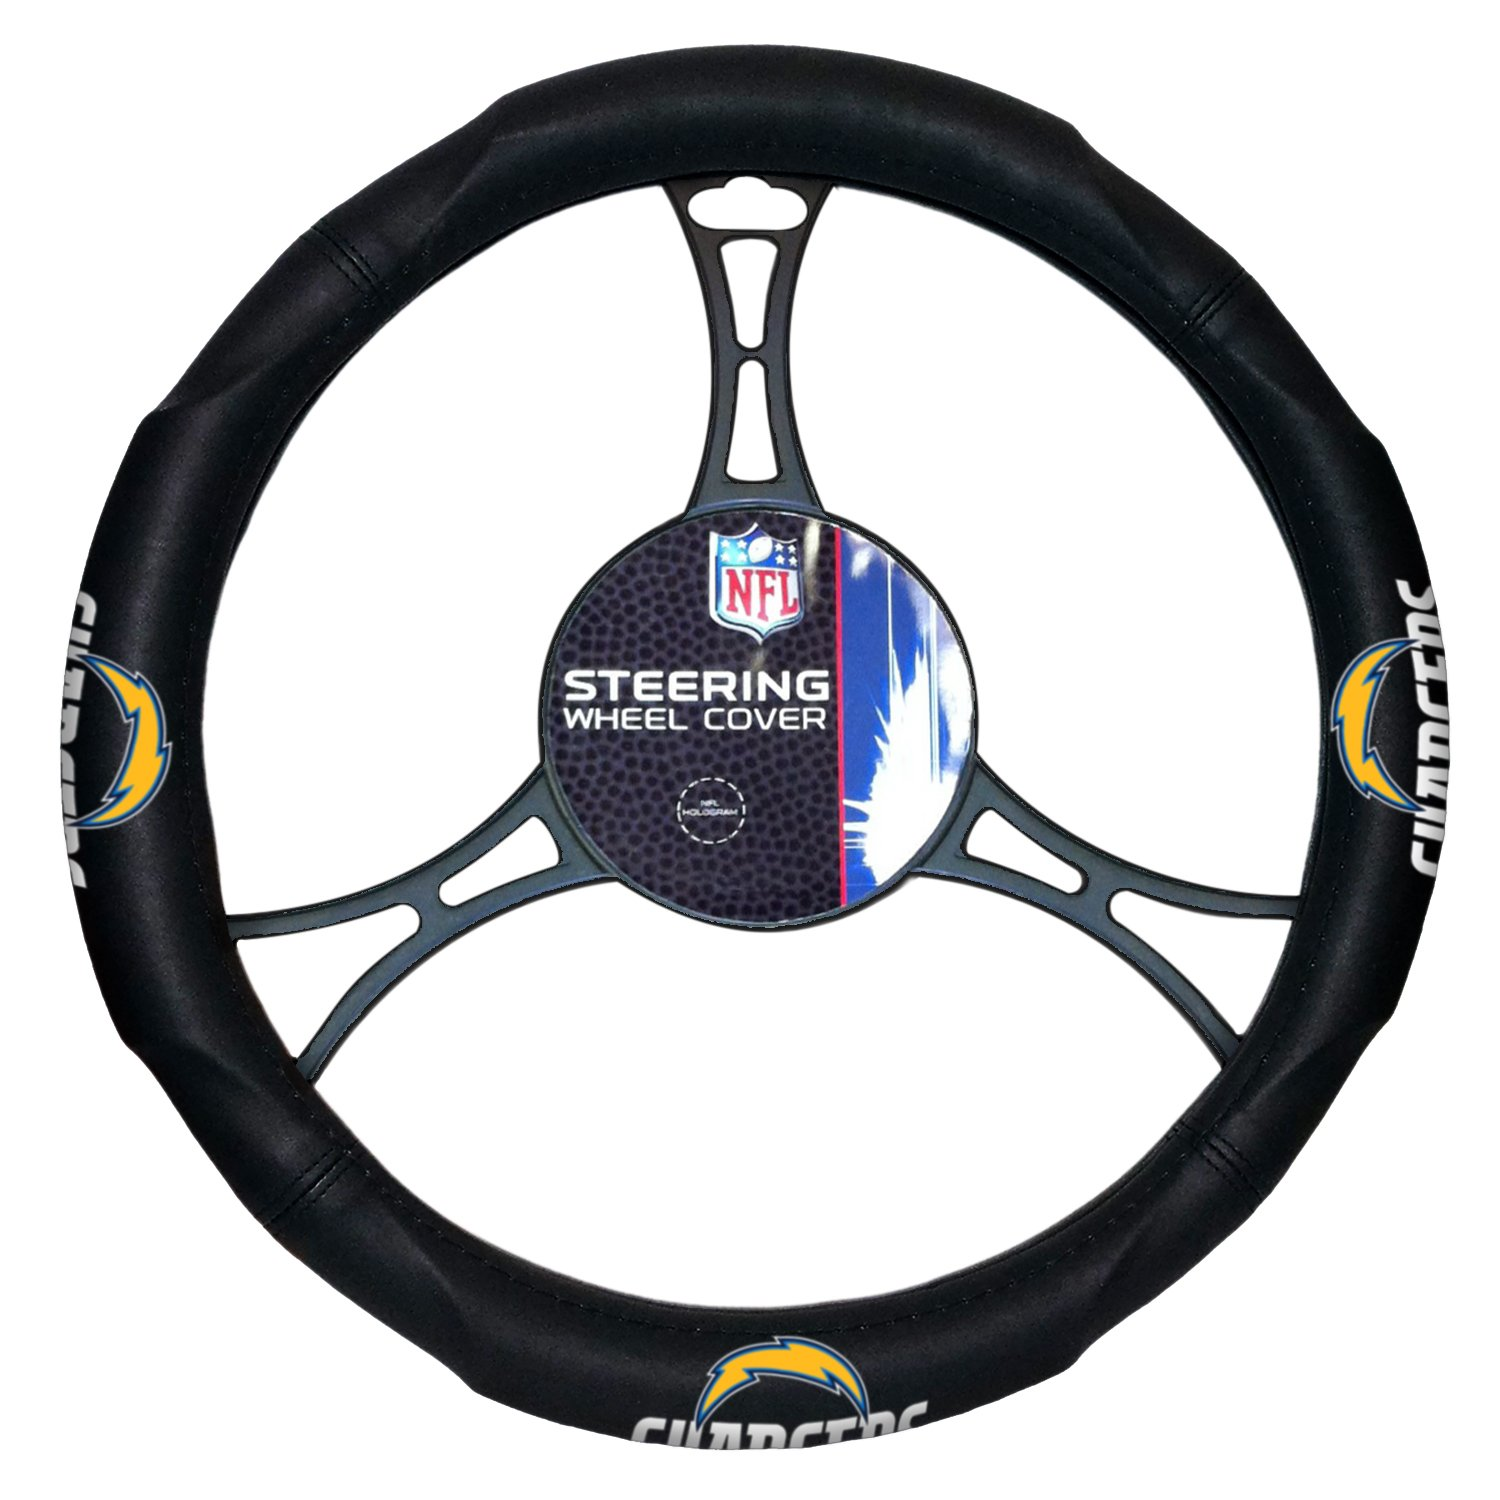 The Northwest Company NFL Unisex Steering Wheel Cover